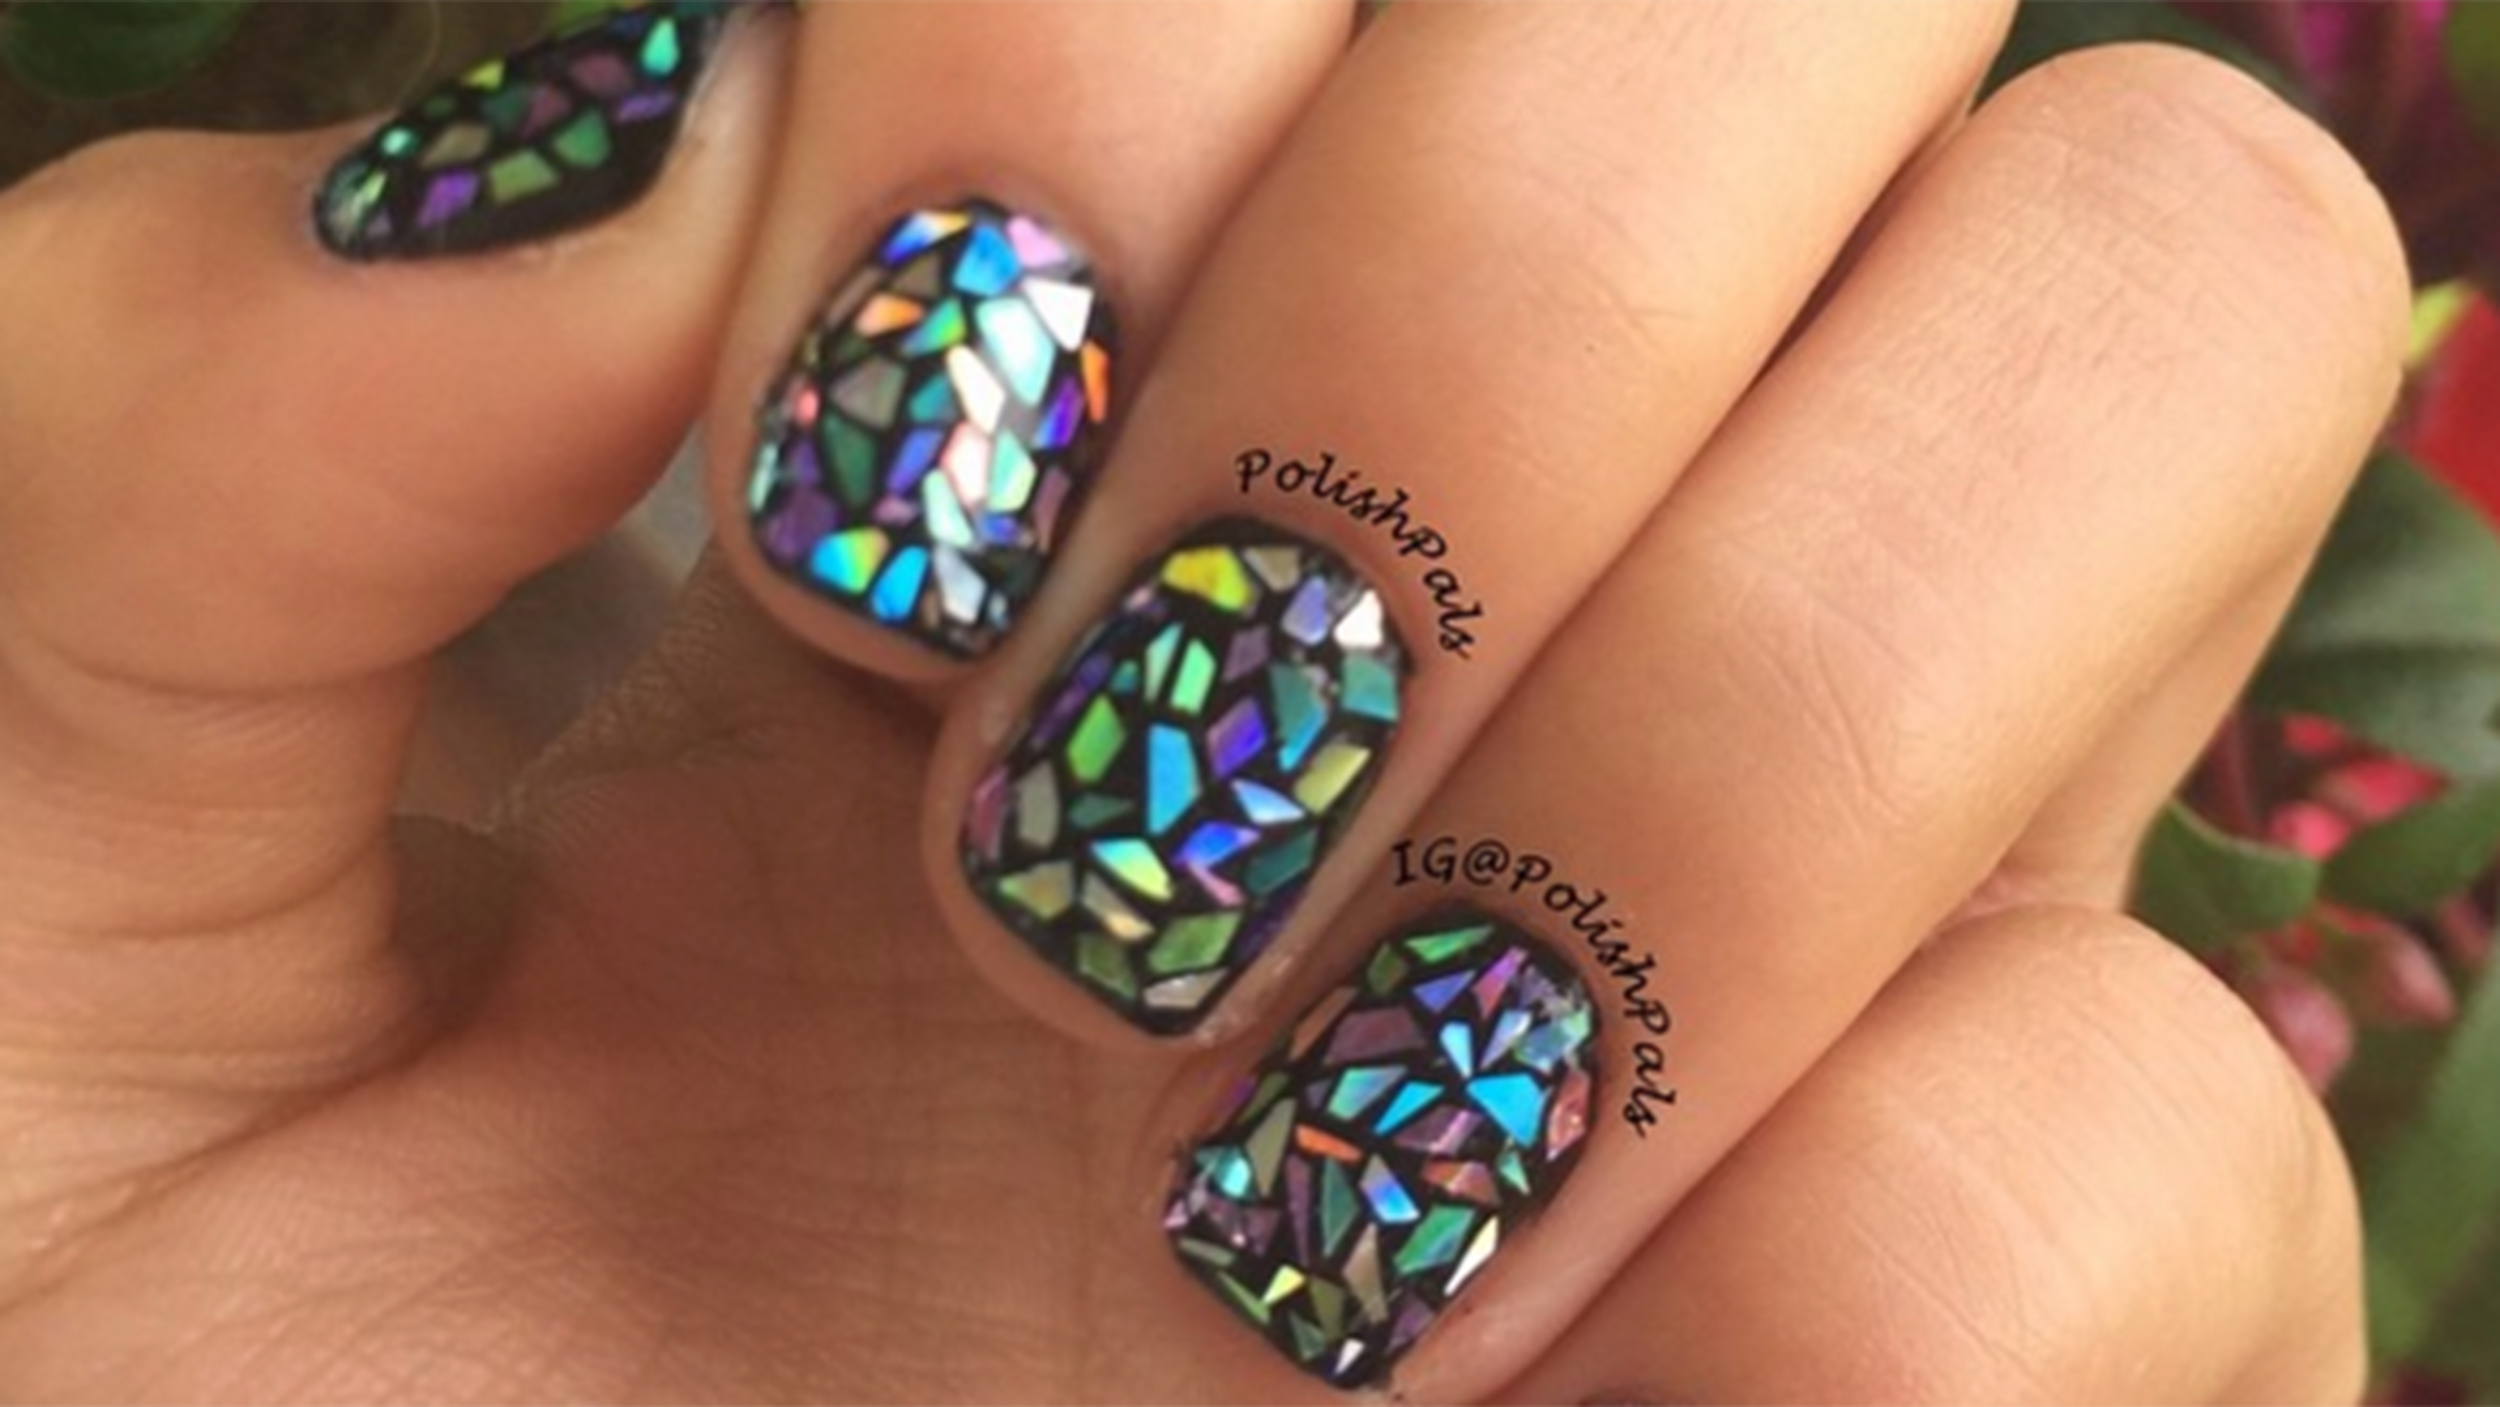 Shattered glass nail art is the hottest trend on the internet shattered glass nail art is the hottest trend on the internet today prinsesfo Images